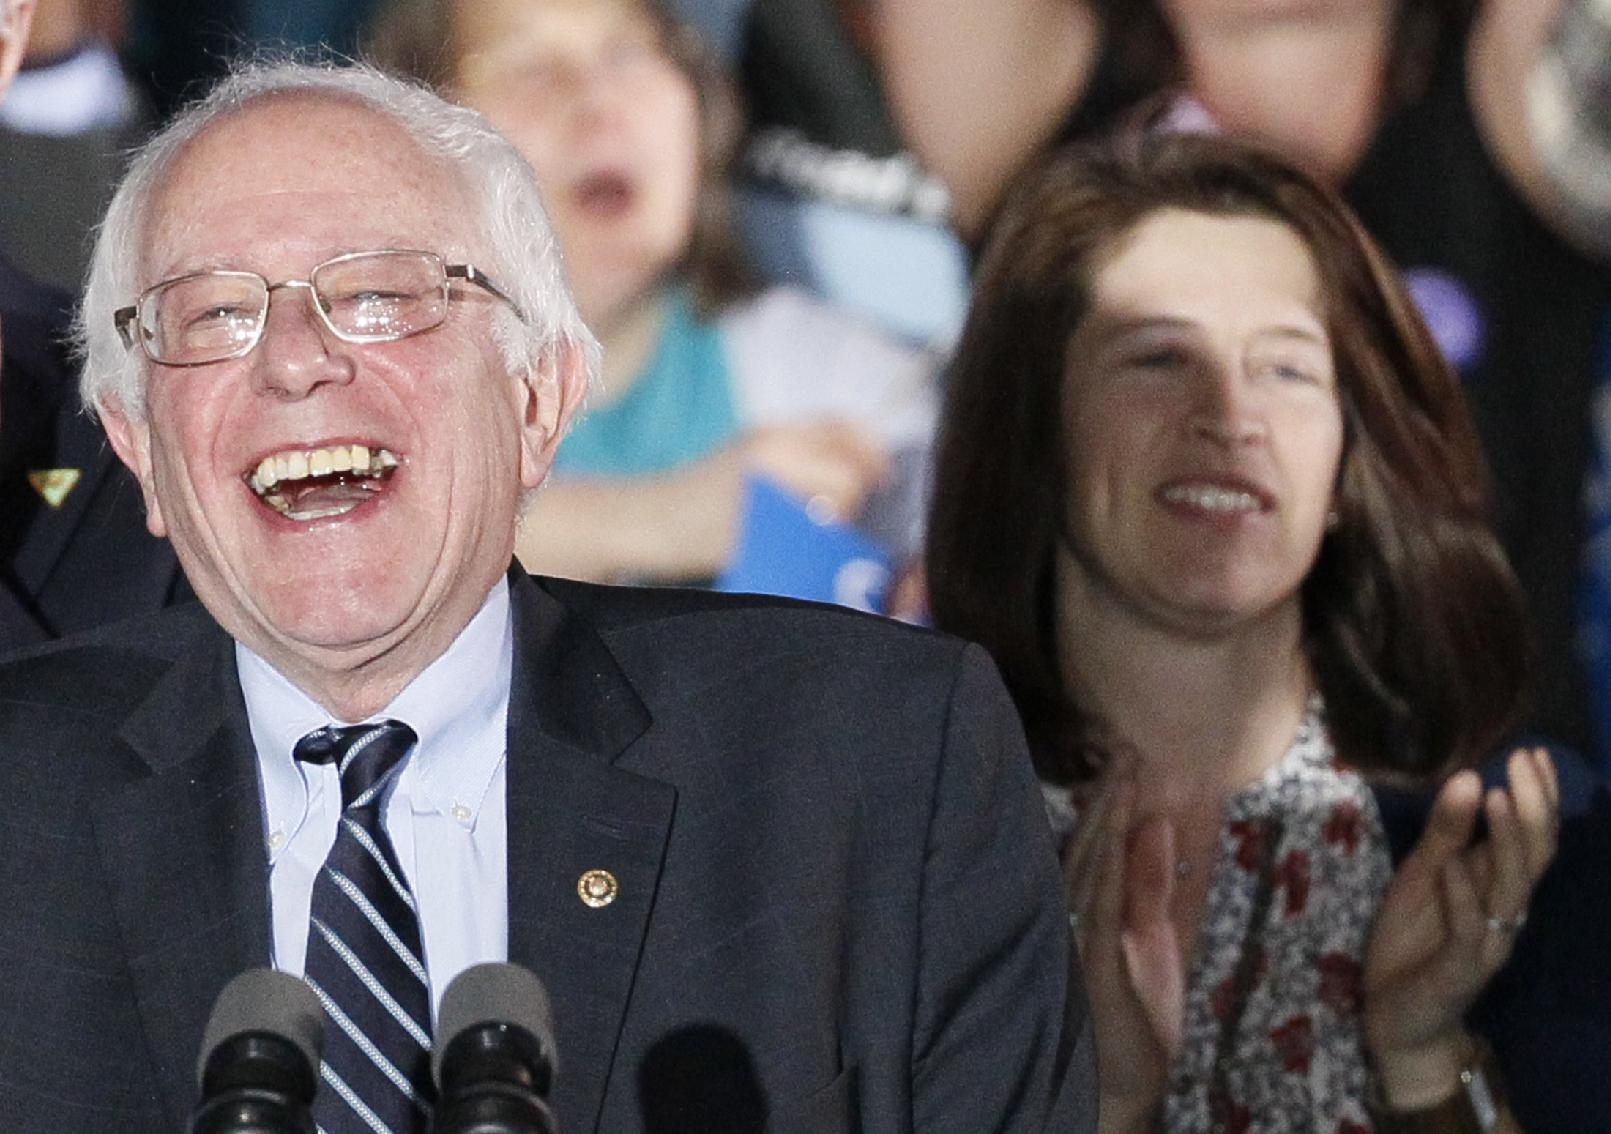 Bernie Sanders raised a whopping amount of cash in the 18 hours after his dominating New Hampshire victory